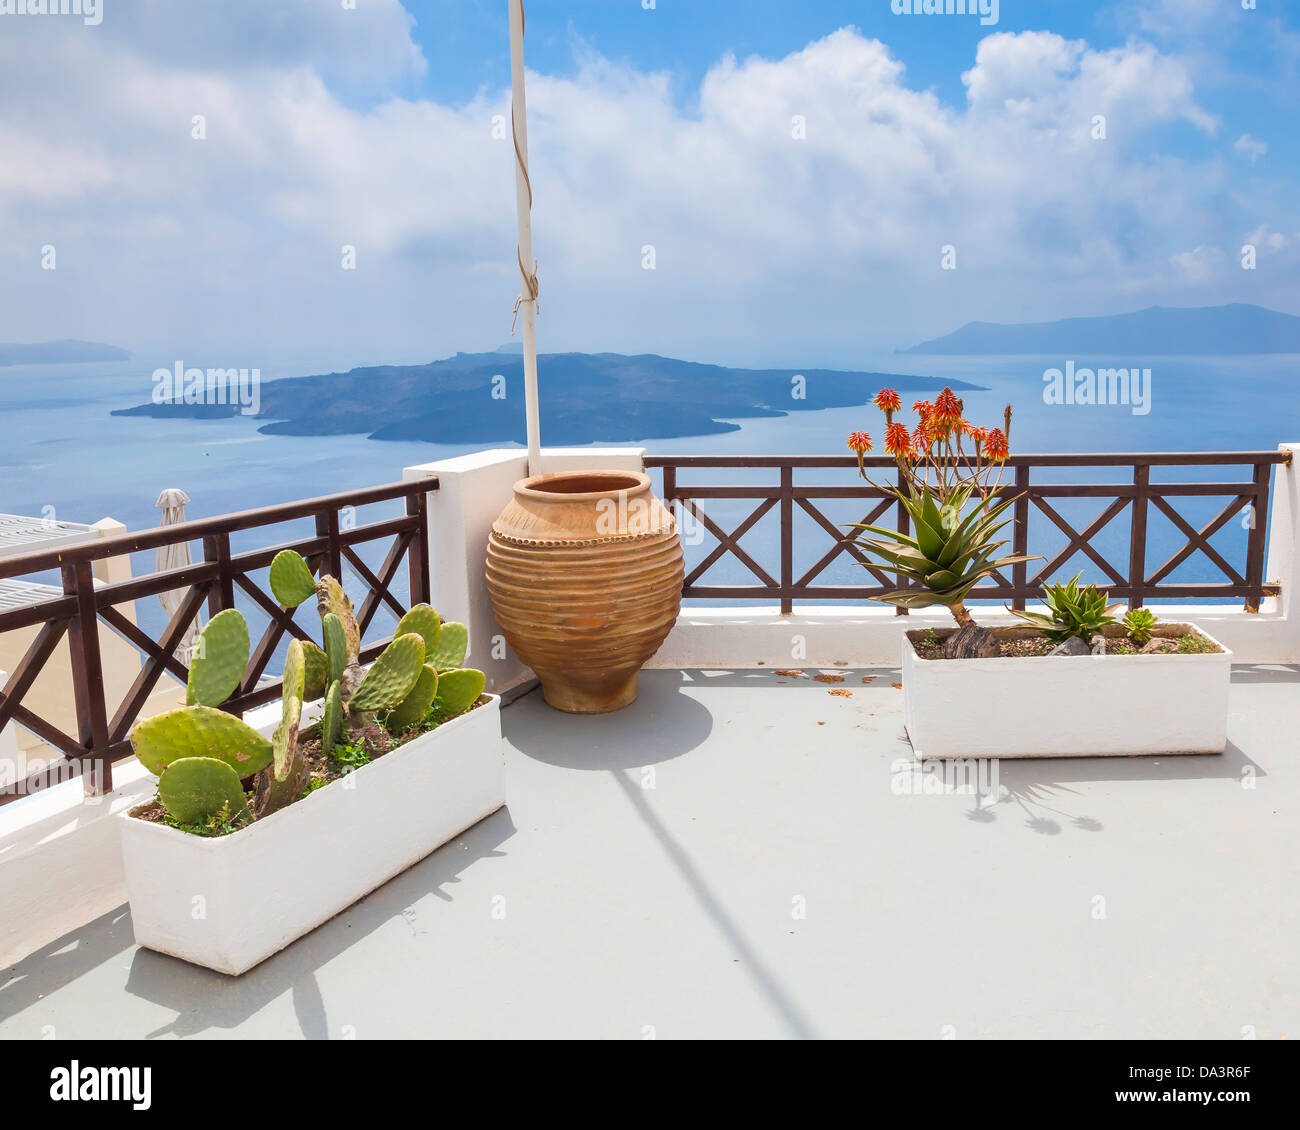 Plants on a rooftop at Fira Santorini Greece Stock Photo